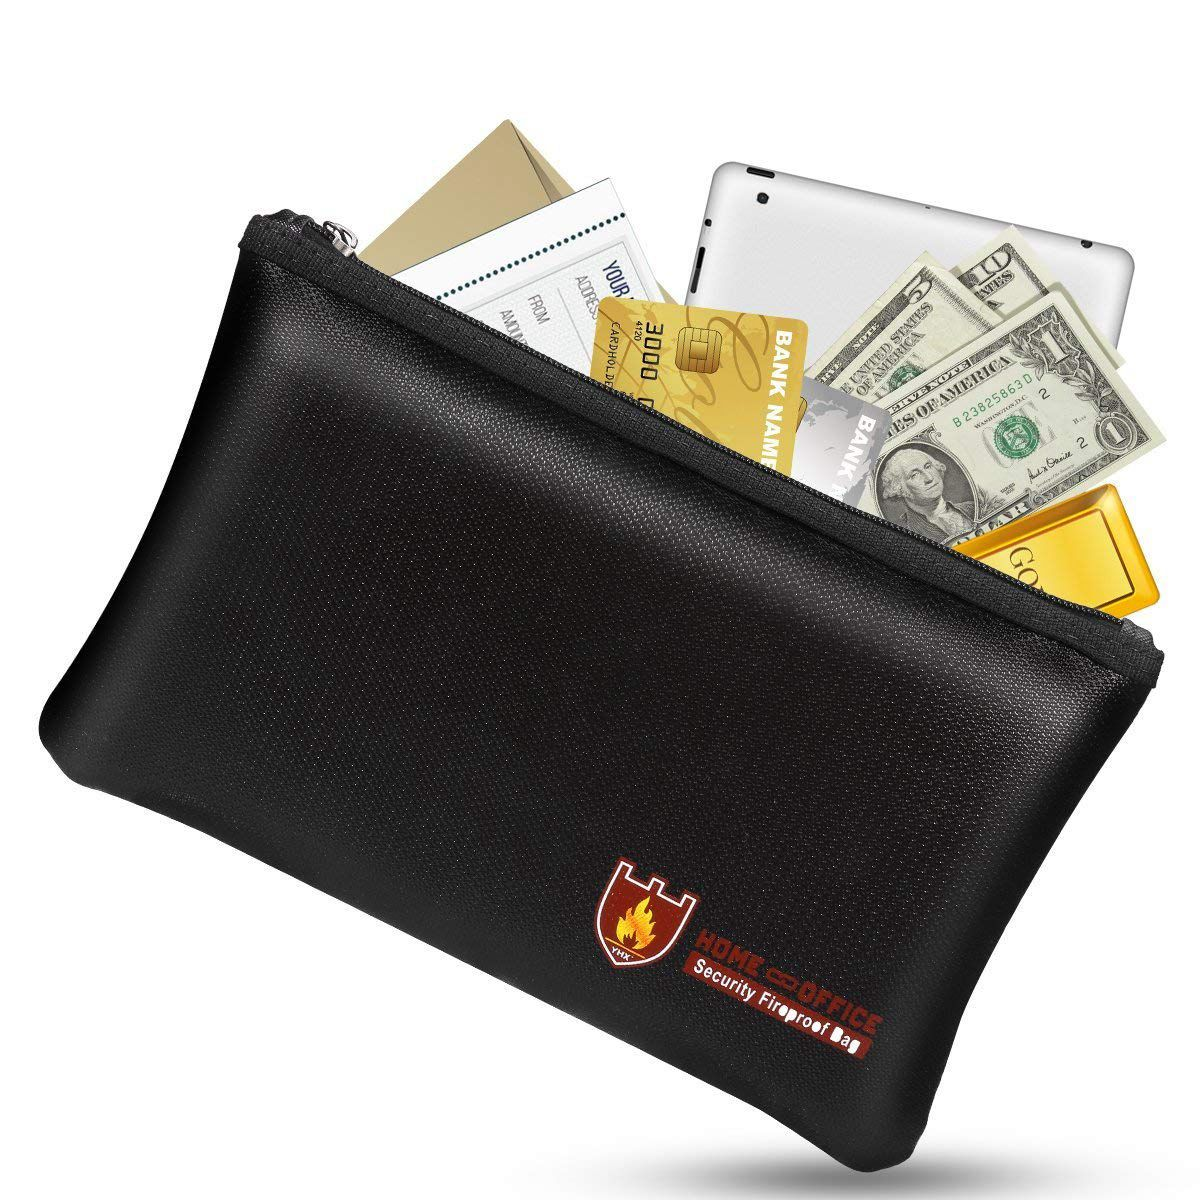 Fire Resistant Document Bag Fireproof Protection Bag Pouch Money Files Safety, 34x25cmFire Resistant Document Bag Fireproof Protection Bag Pouch Money Files Safety, 34x25cm